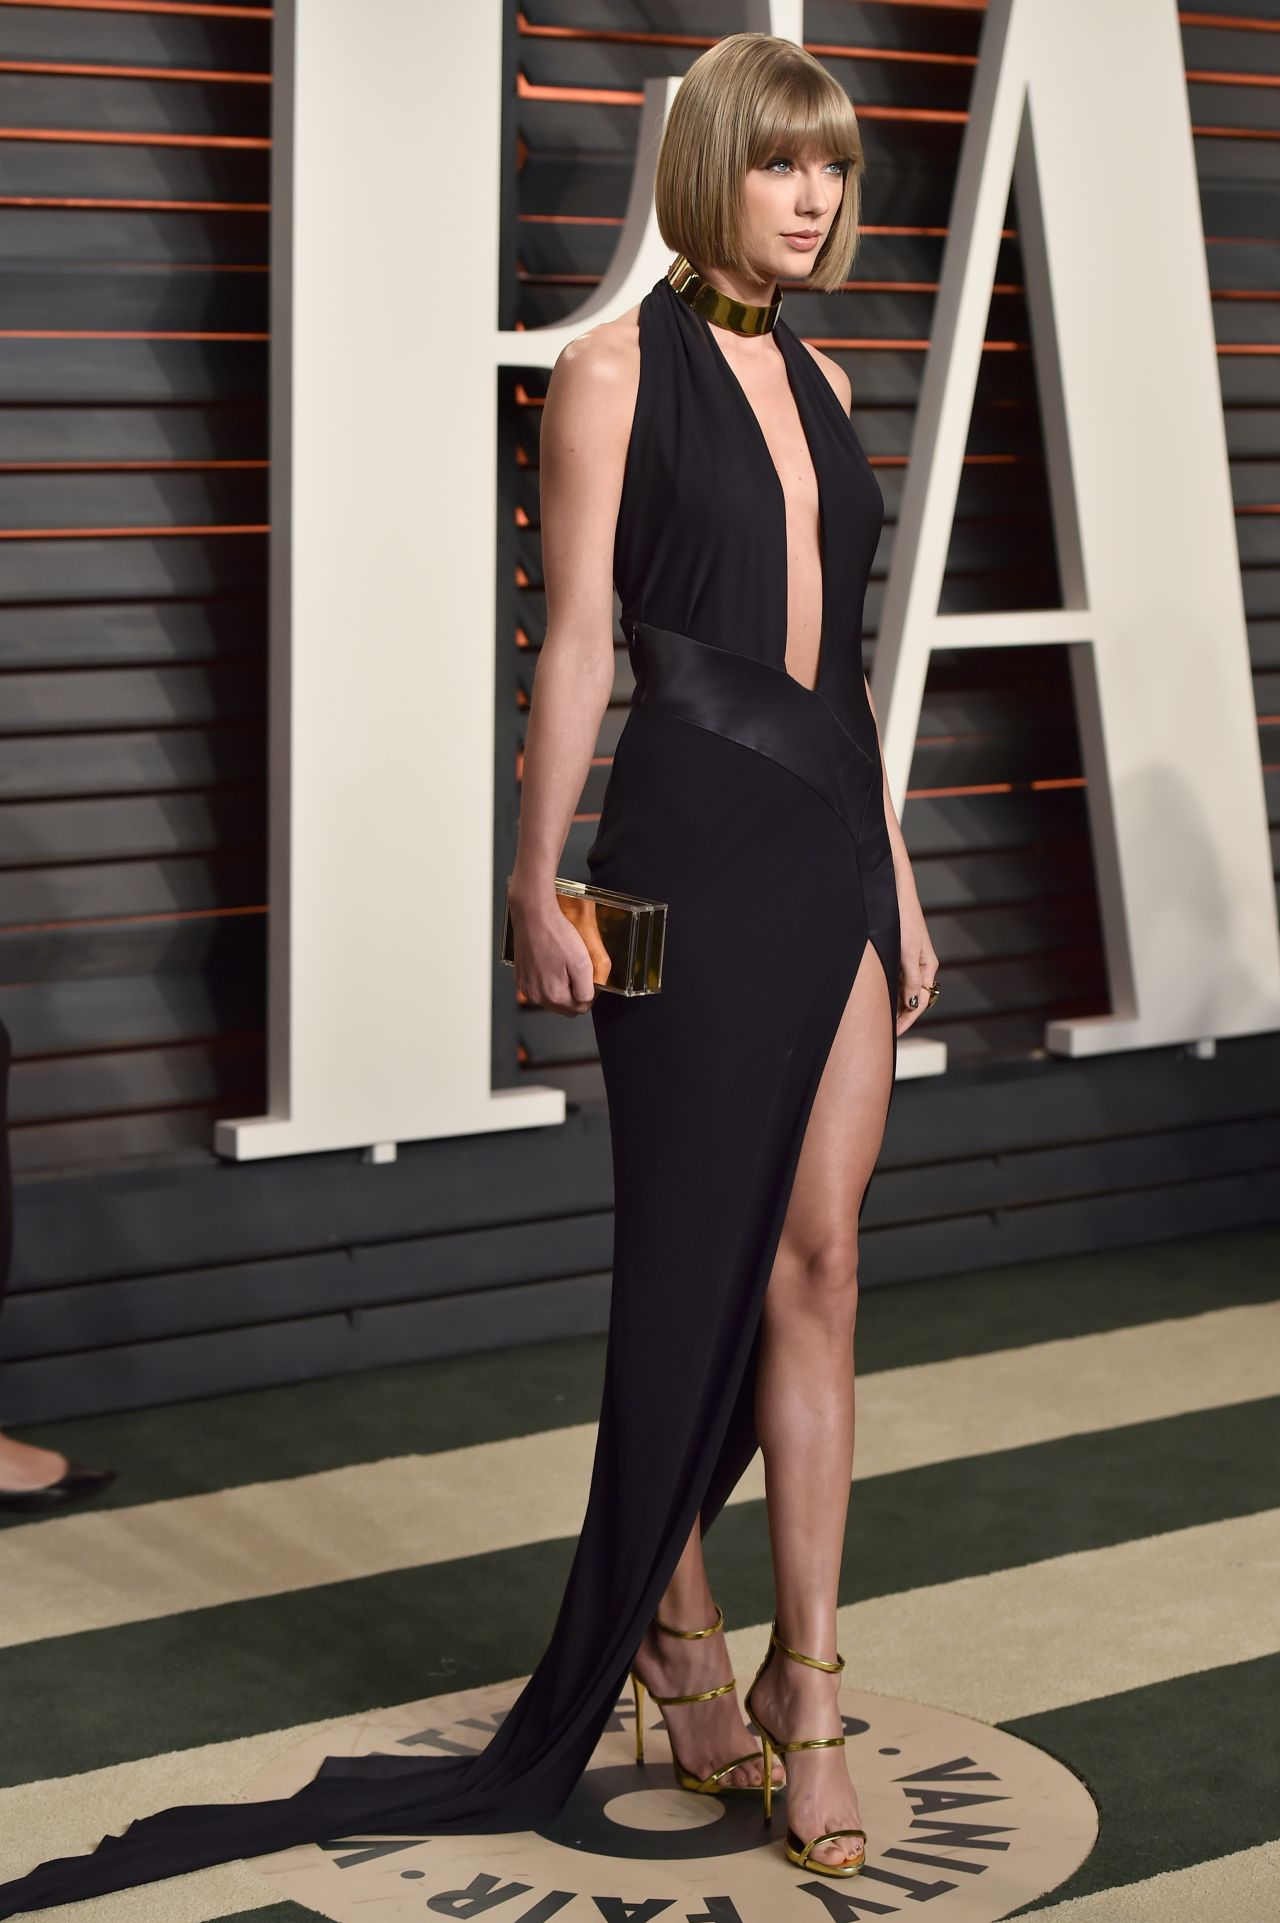 taylor-swift-vanity-fair-oscar-2016-party-in-beverly-hills-ca-2